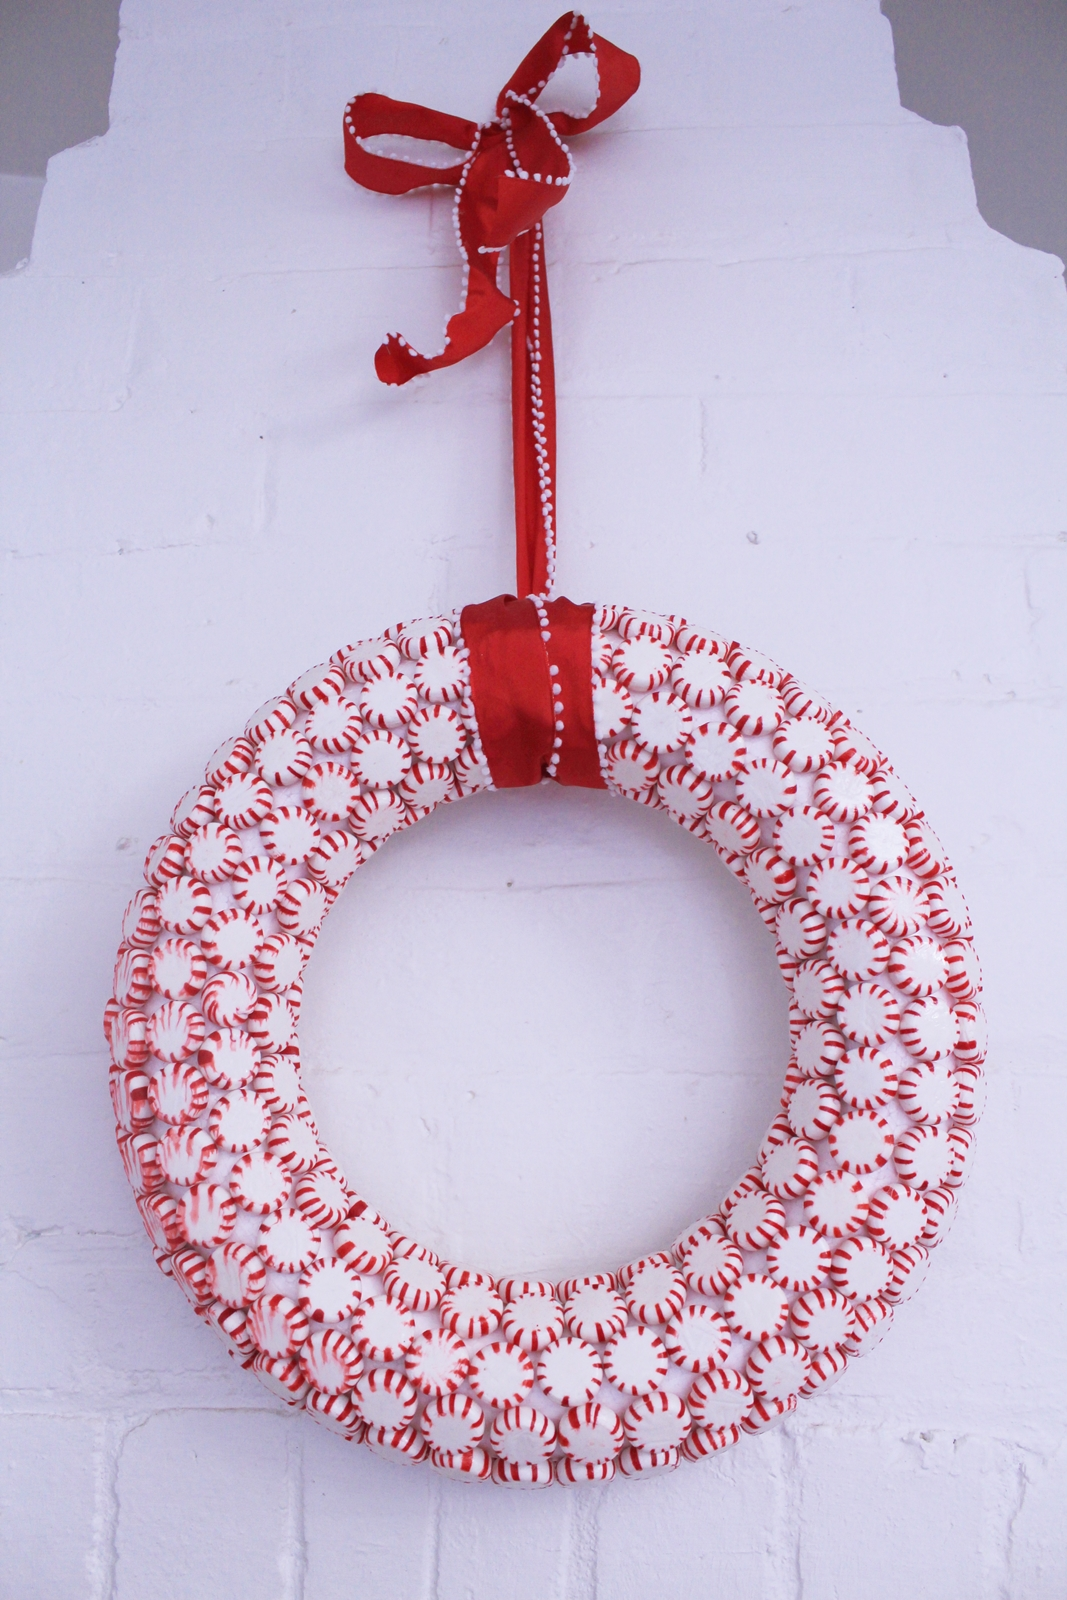 Starlight wreath mint - bright white